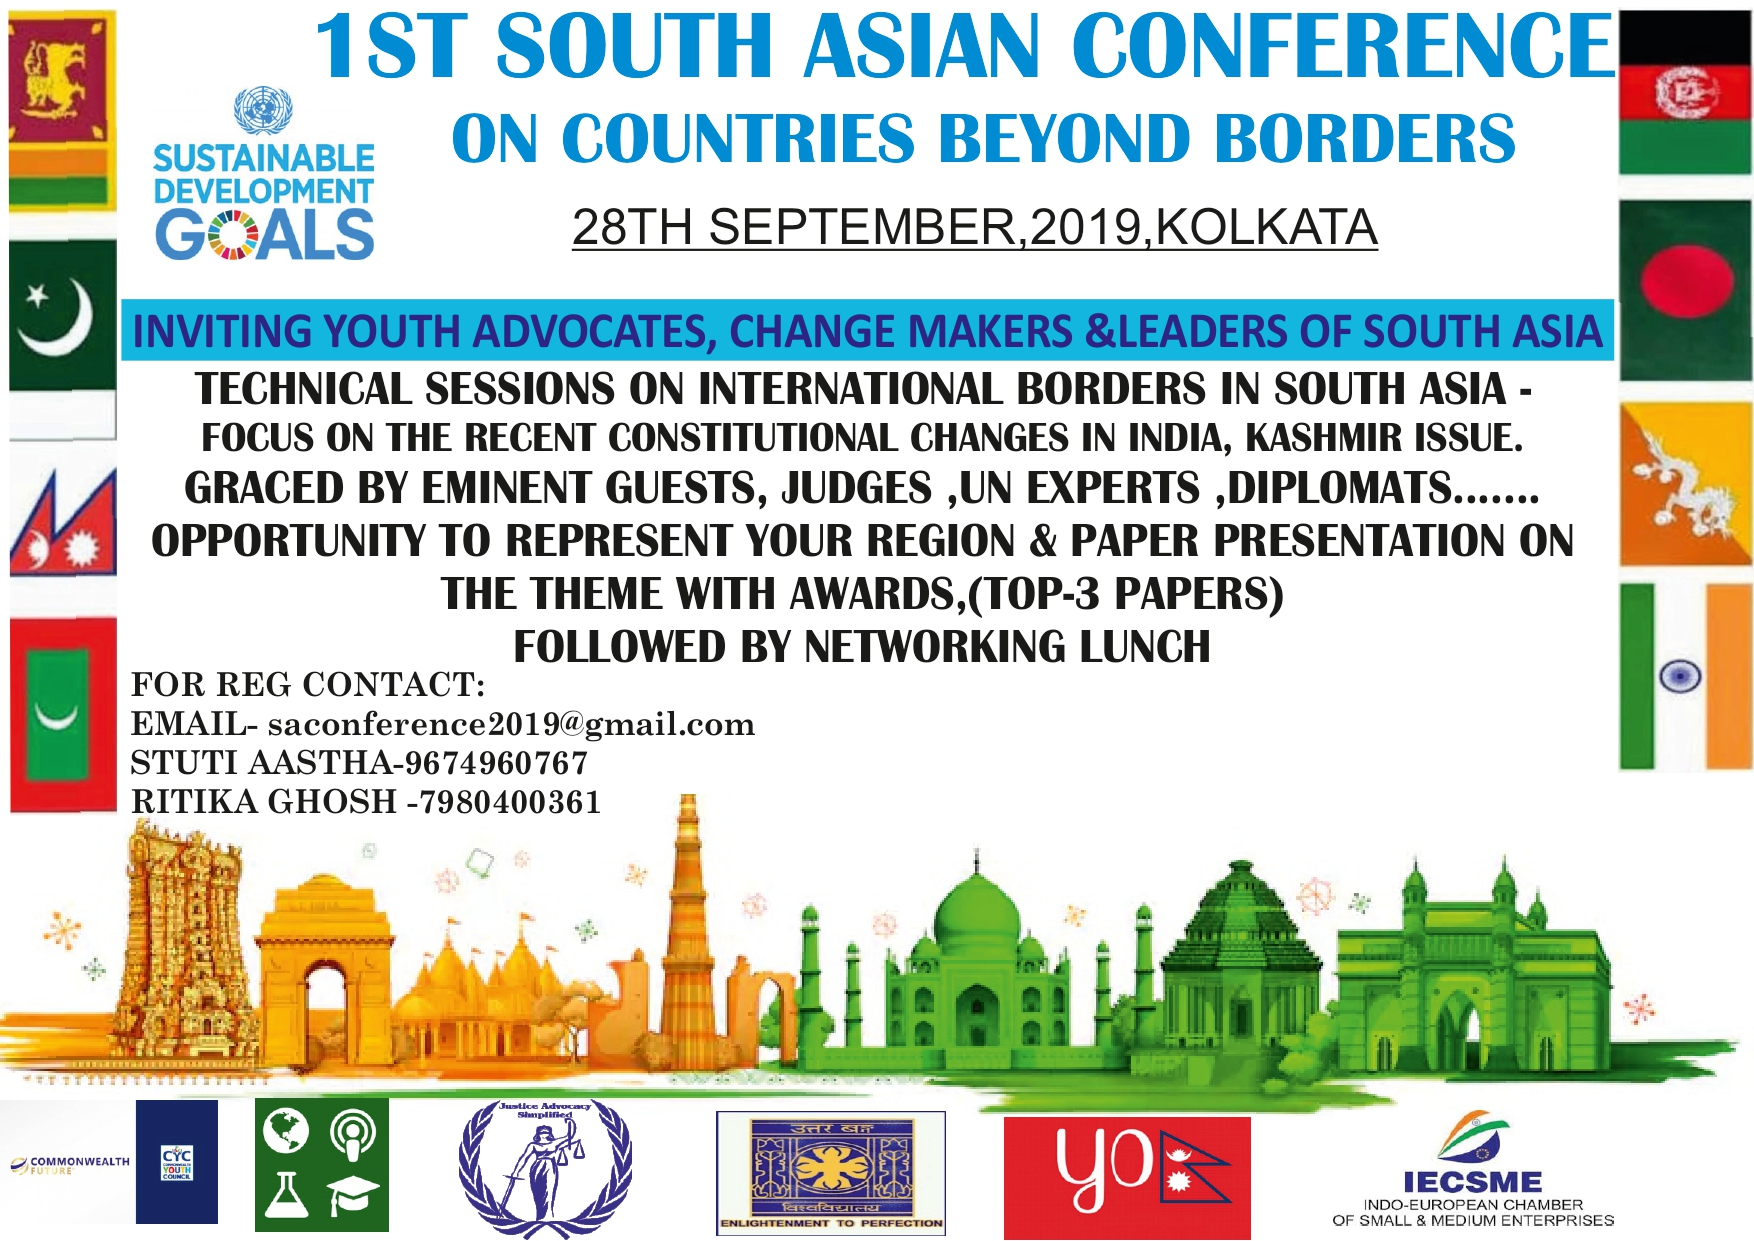 CfP: 1st South-Asian Conference on Countries Beyond Borders by JAS [Sep 28, Kolkata]: Submit by Sep 25